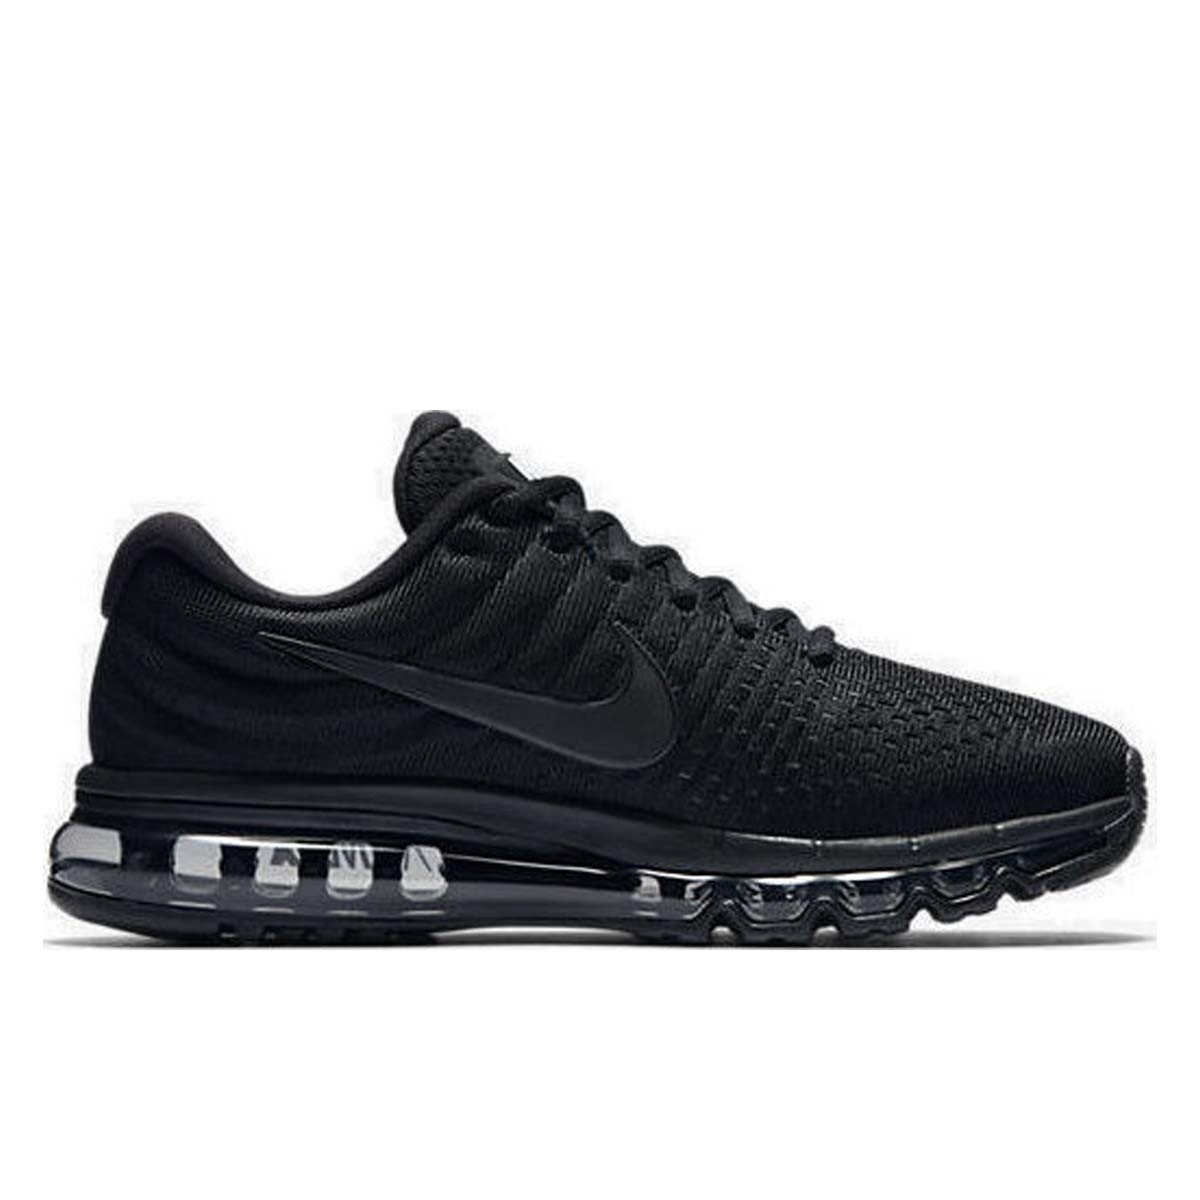 fa6ecf97e4 Nike AIR MAX 2017 RUNNING ΑΝΔΡΙΚΟ - 849559-004